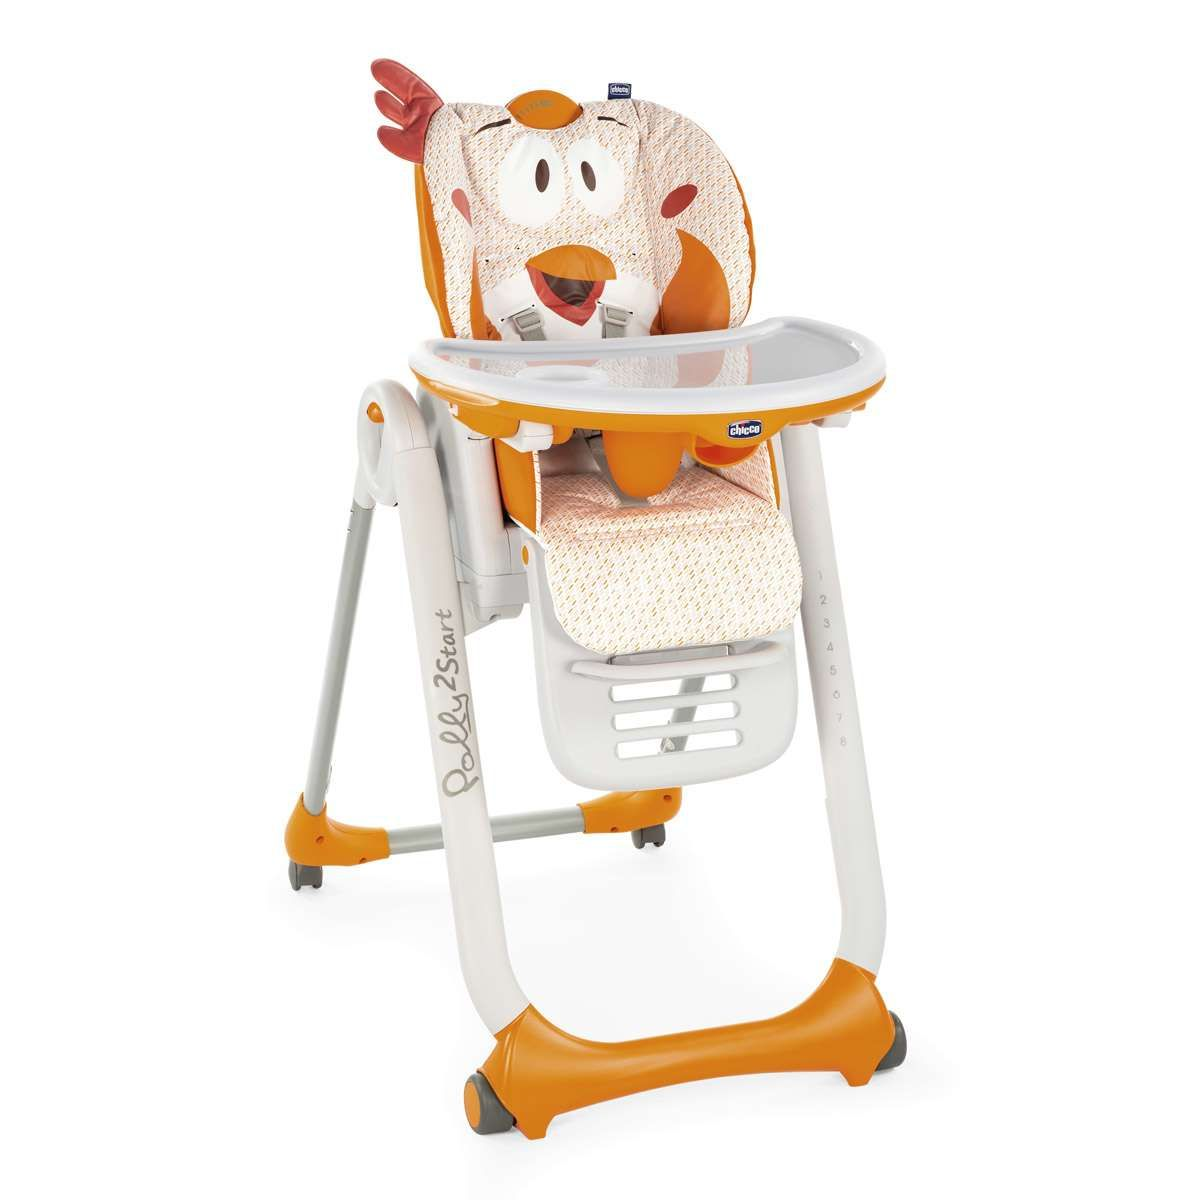 Specially Designed For Babies Kids And Children According To Their Respective Ages Chicco Highchair For Babies A High Chair Wooden High Chairs Fancy Chickens